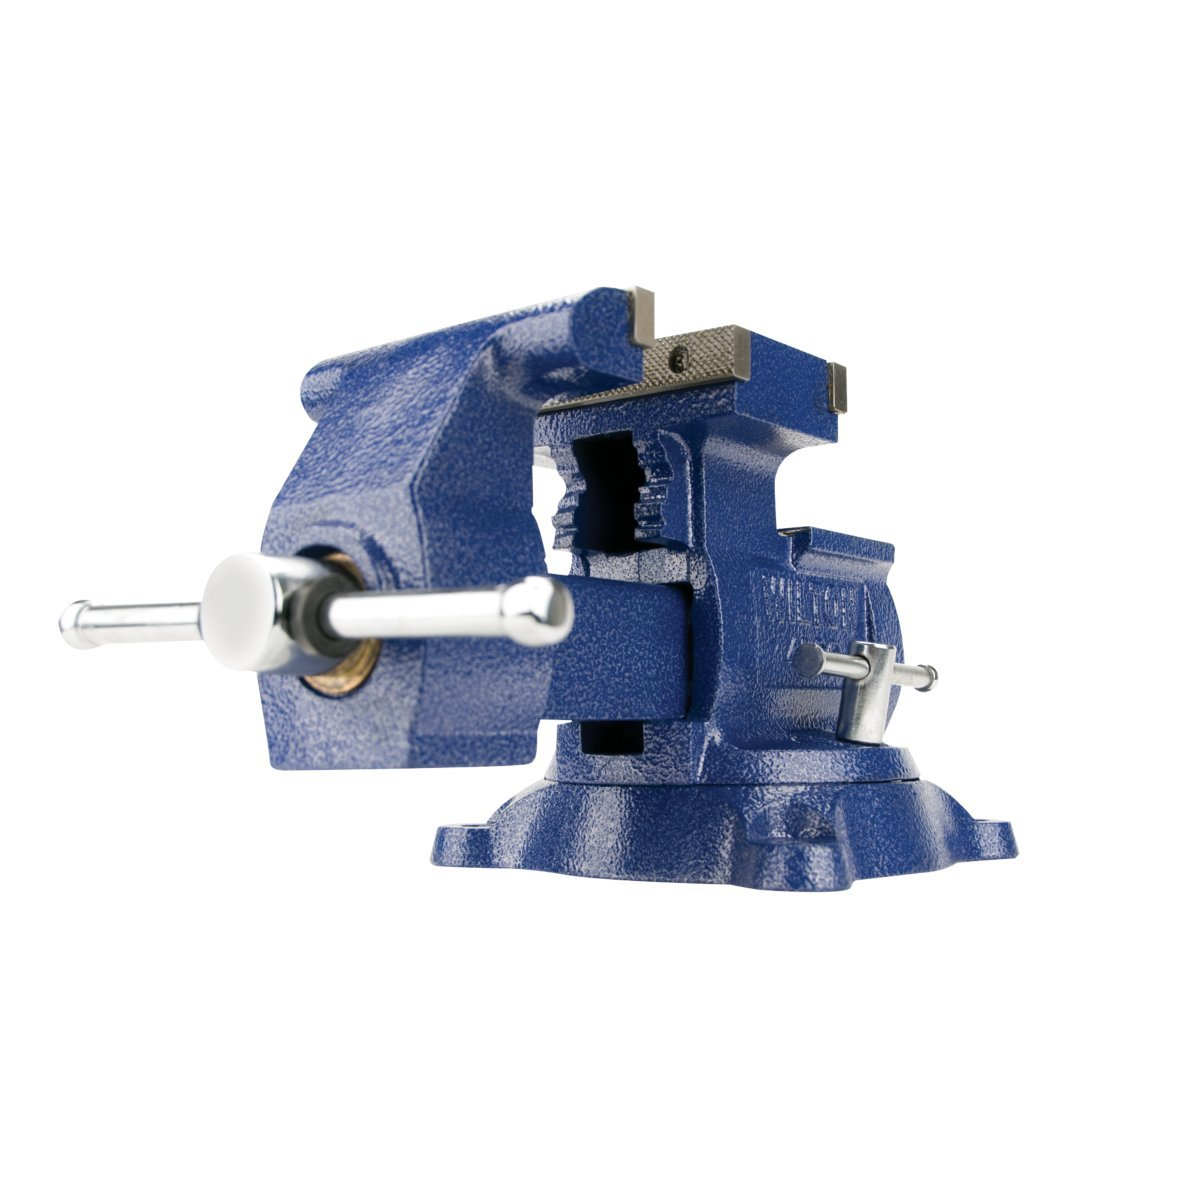 Wilton 14500 4500, Reversible Mechanics Vise-Swivel Base, 5-1/2-Inch Jaw Width, 6-Inch Jaw Opening, 3-3/4-Inch Throat Depth